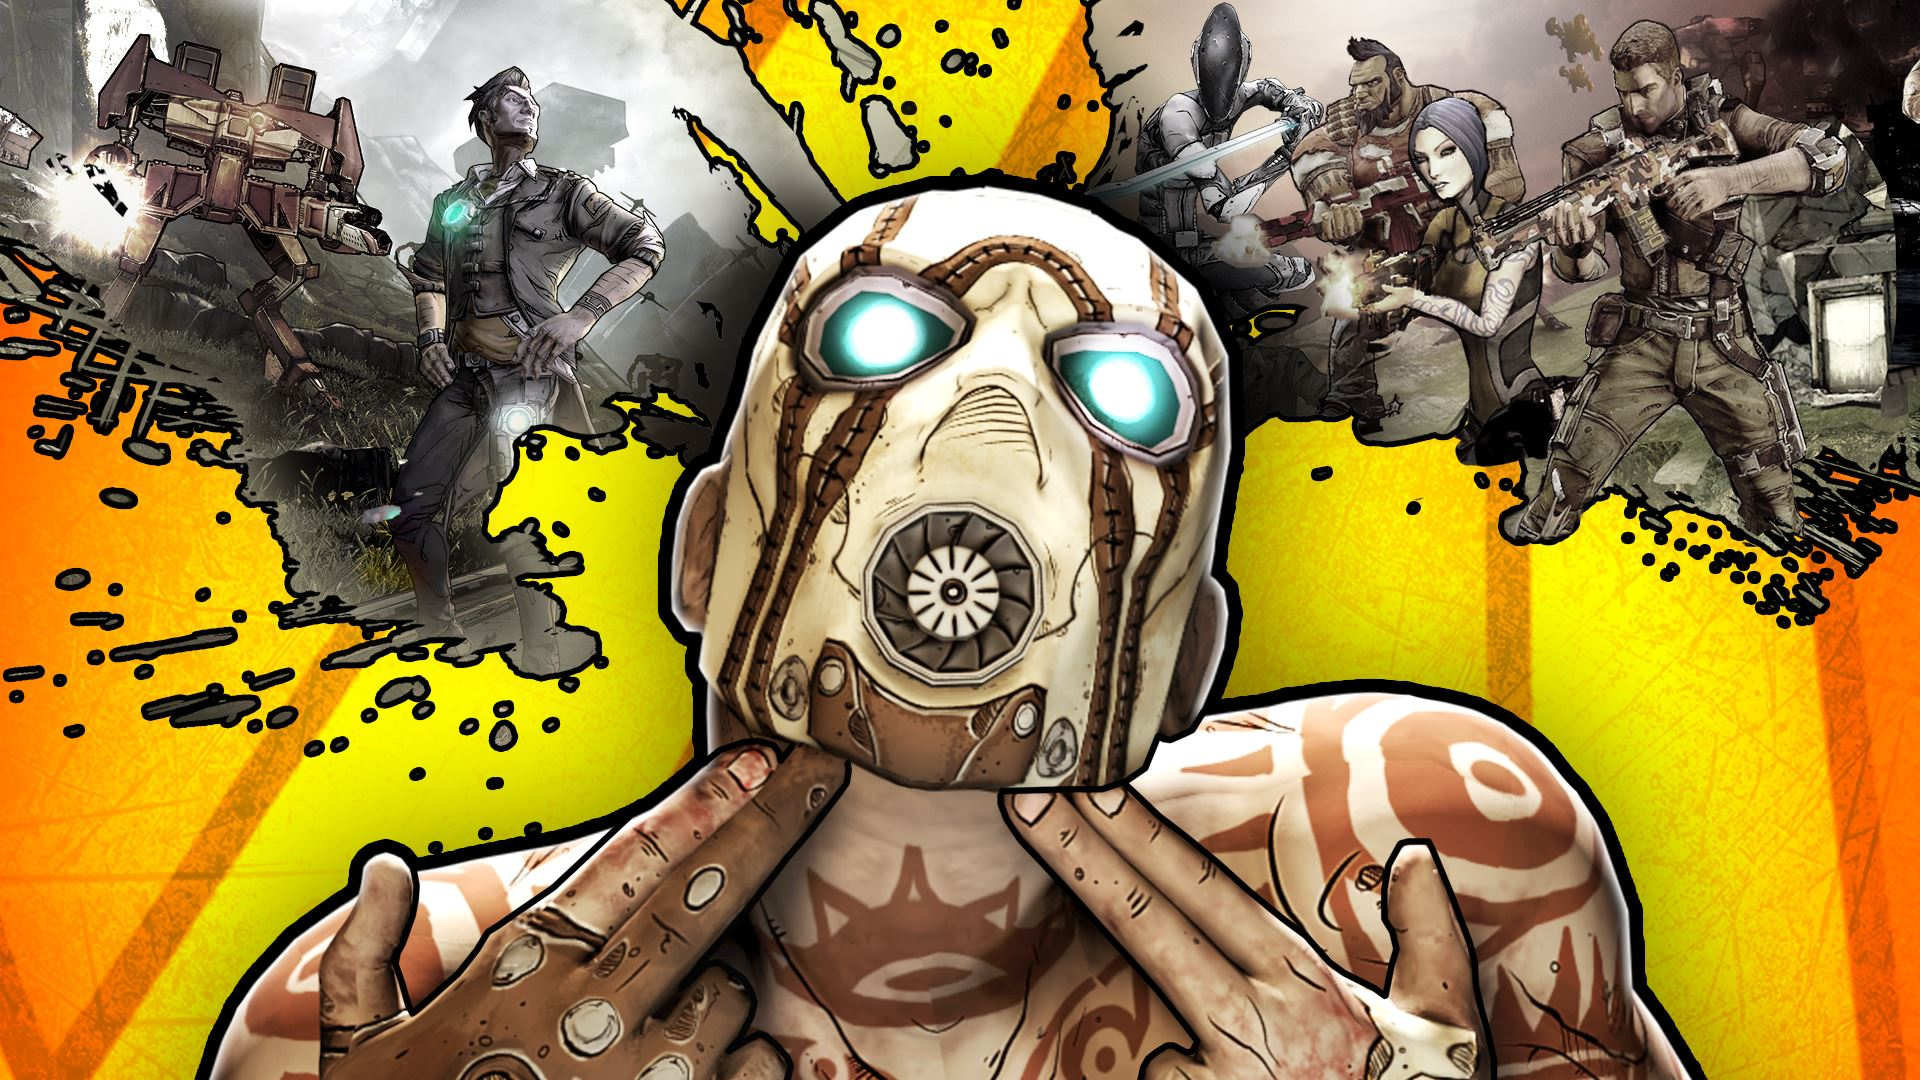 Gearbox Confirm Borderlands 3 Is Their Next Project image 5